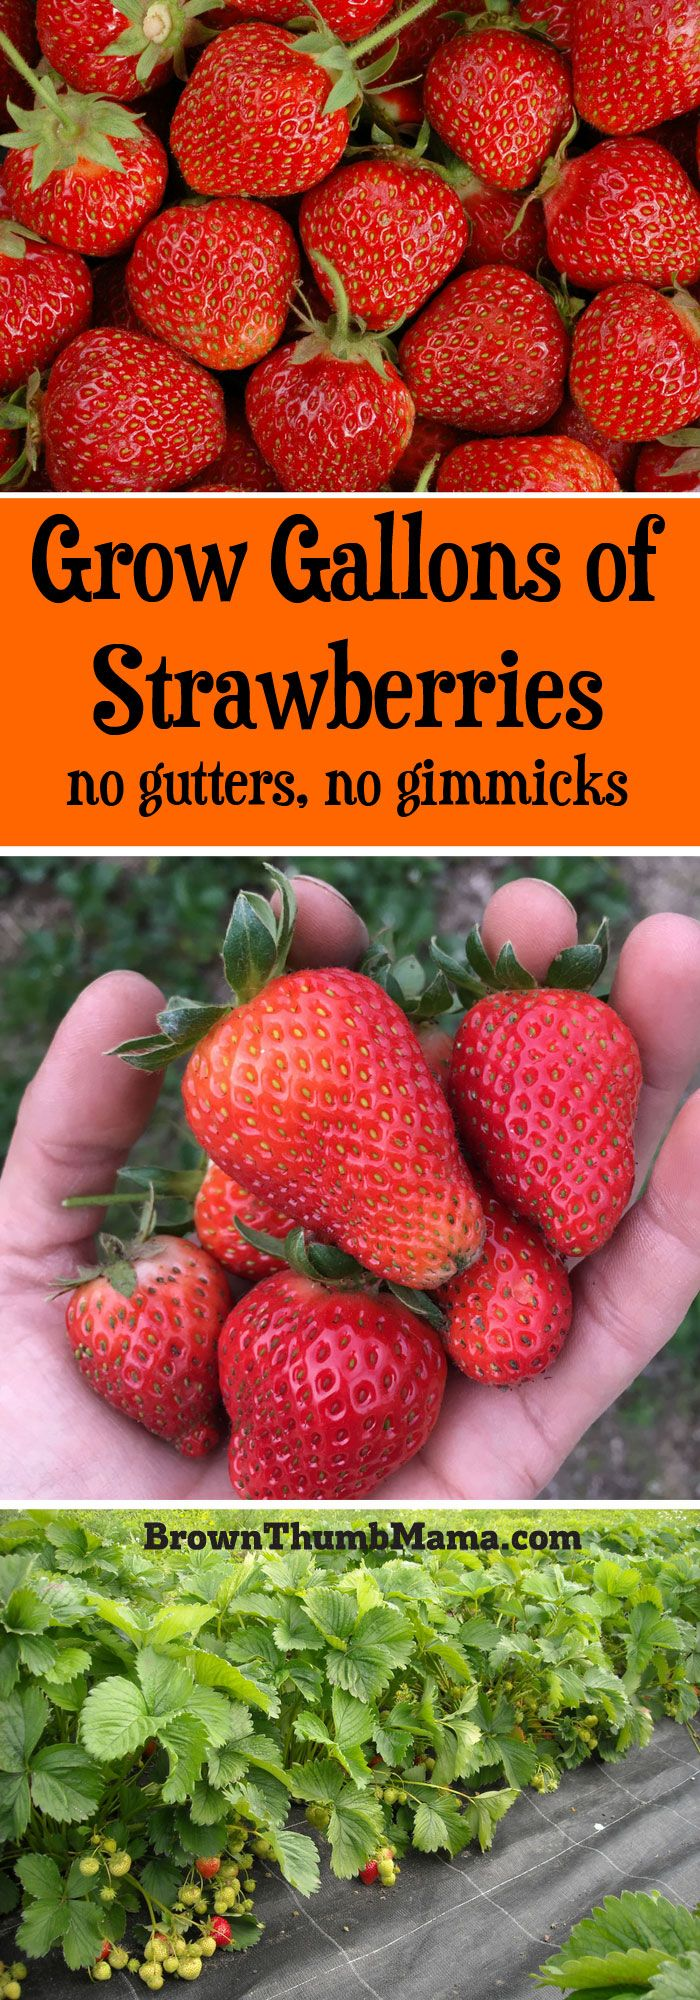 Grow Gallons of Strawberries | Brown Thumb Mama